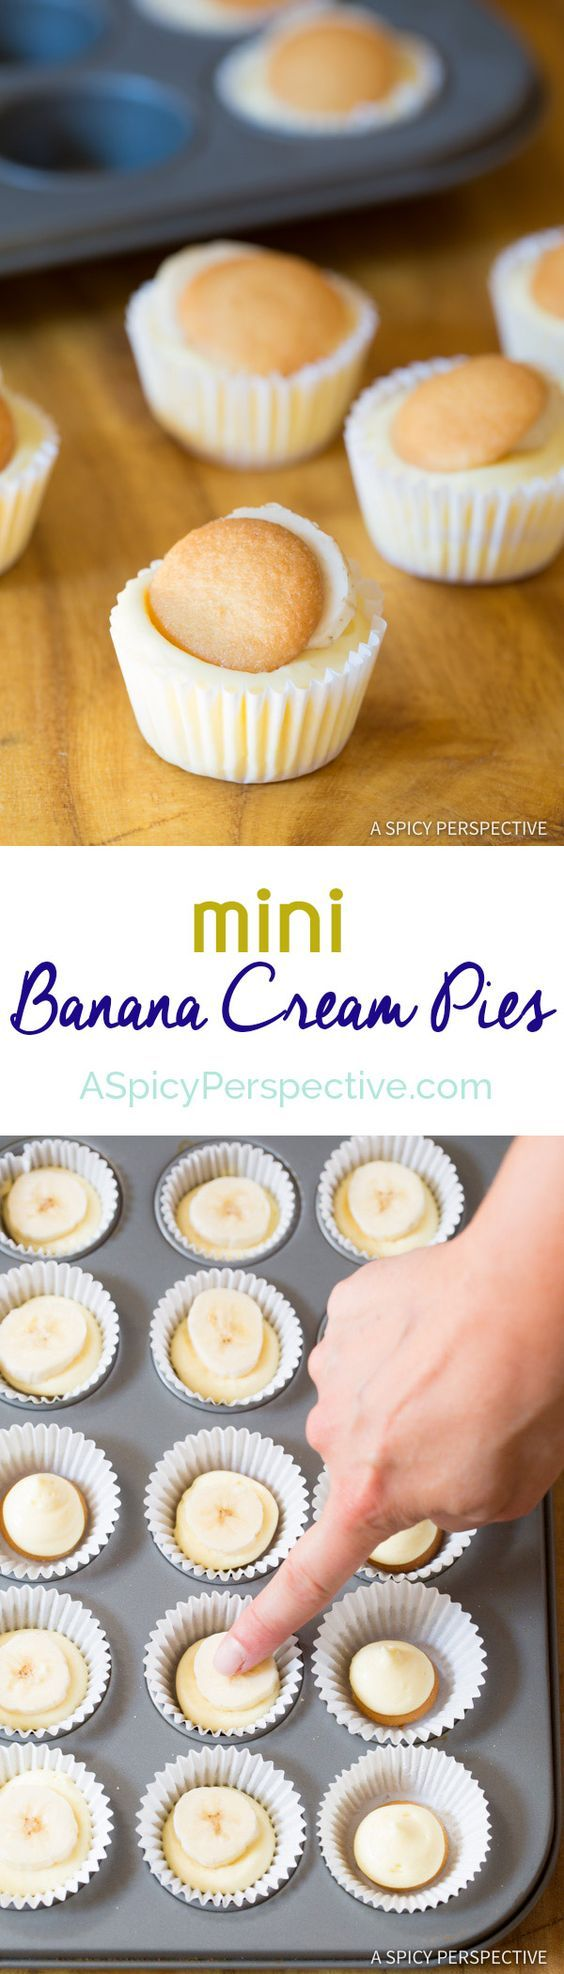 Fun to Make 6-Ingredient Mini Banana Cream Pie Recipe (Banana Pudding Tarts) on ASpicyPerspective...